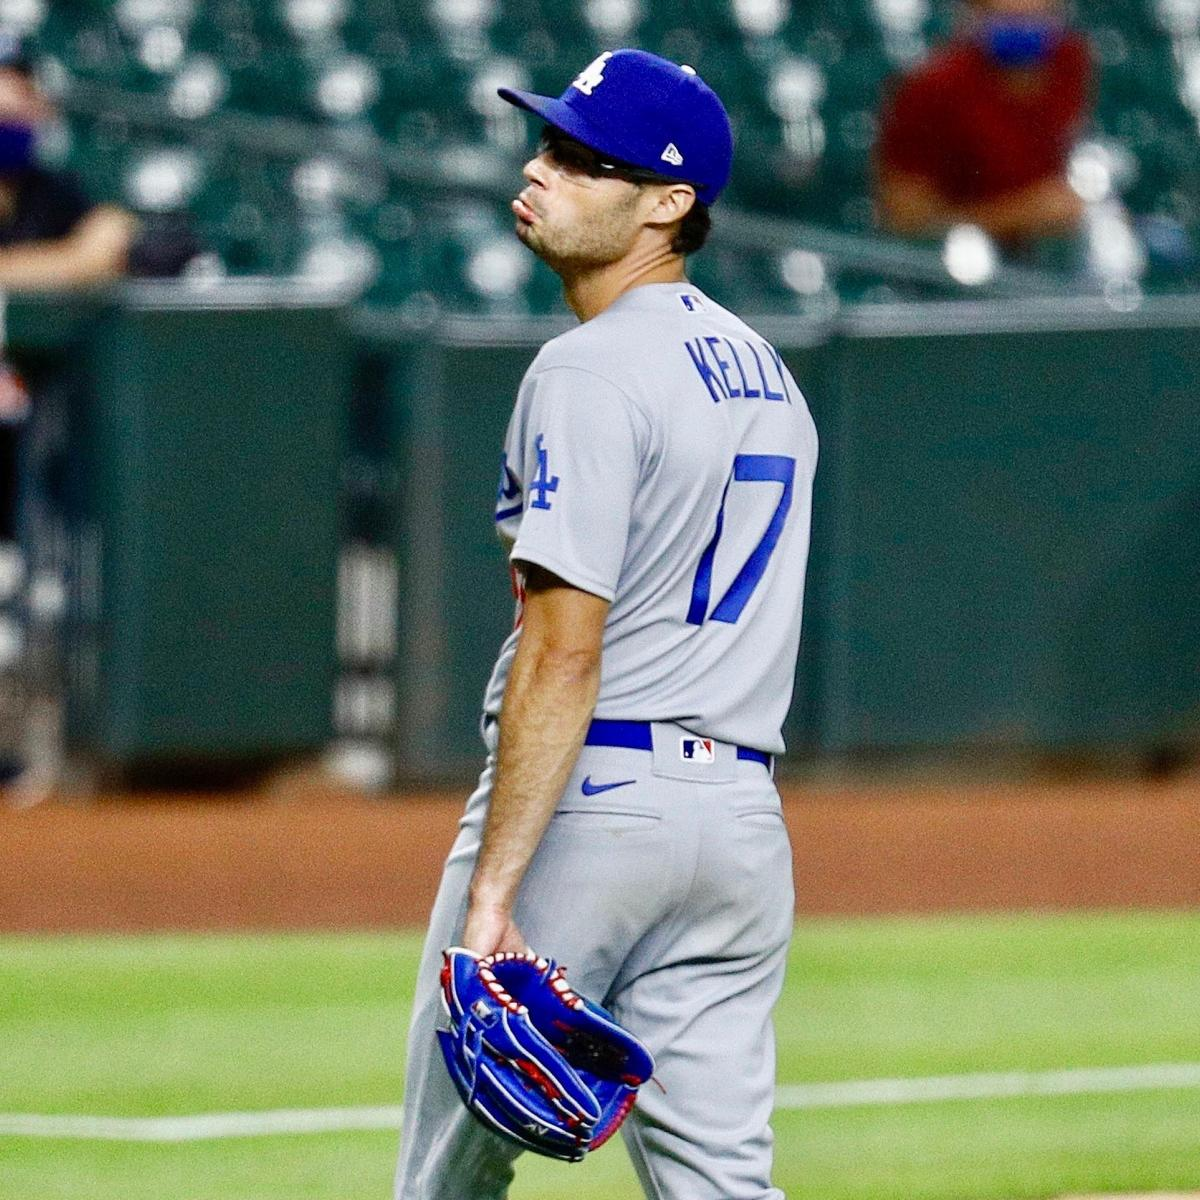 Mlb Hates Me Joe Kelly Is The Hero We Need Bleacher Report Latest News Videos And Highlights Latest on los angeles dodgers relief pitcher joe kelly including news, stats, videos, highlights and more on espn. mlb hates me joe kelly is the hero we